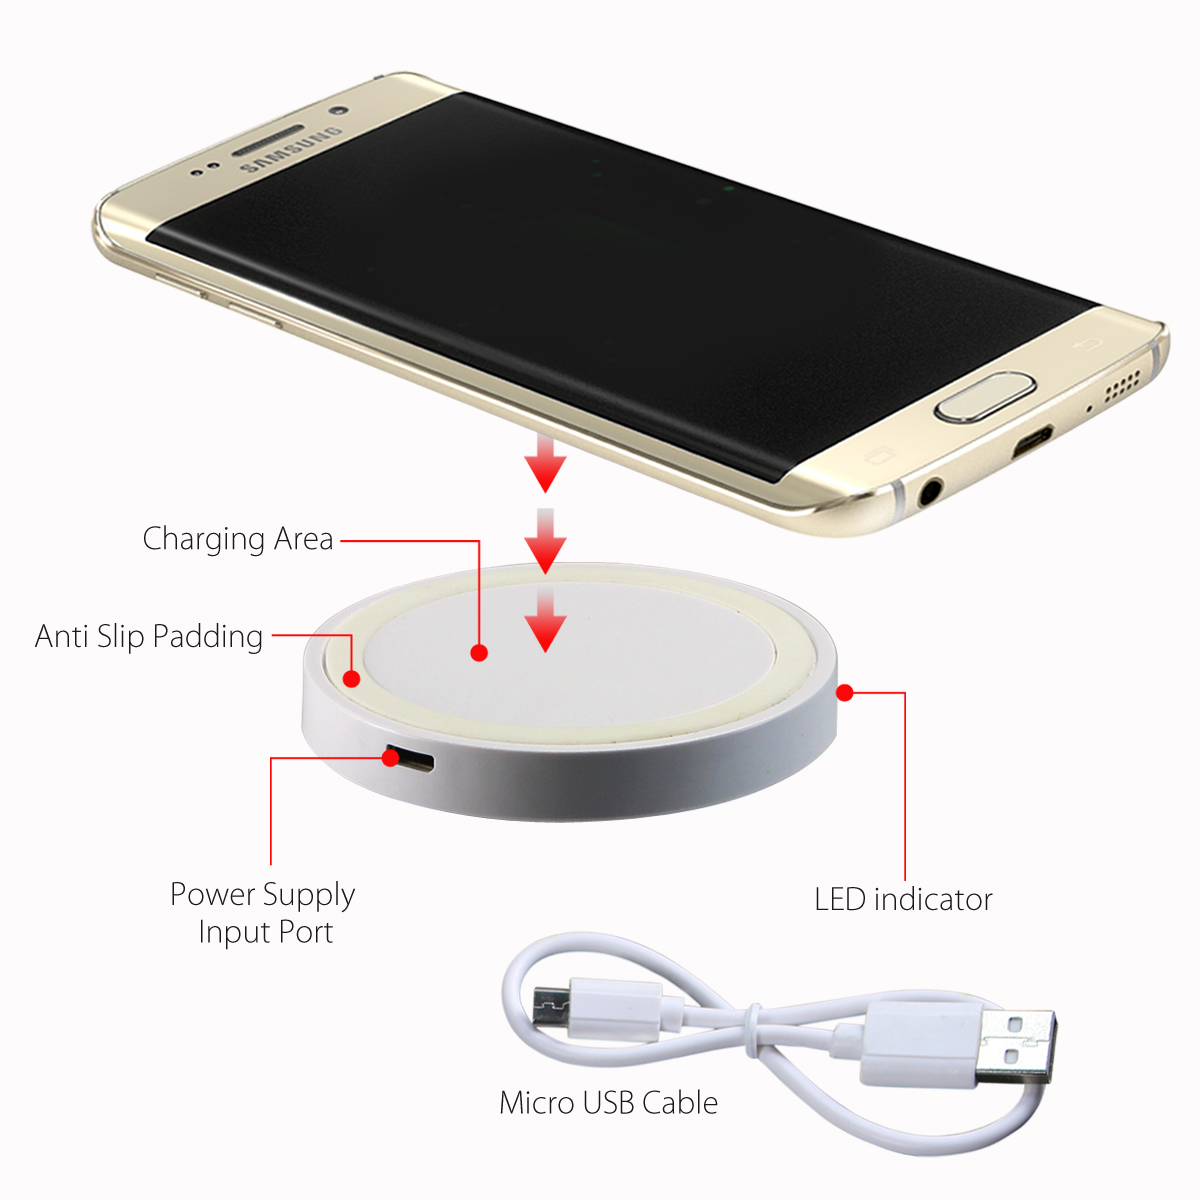 qi wireless charging pad for smartphones tanga. Black Bedroom Furniture Sets. Home Design Ideas